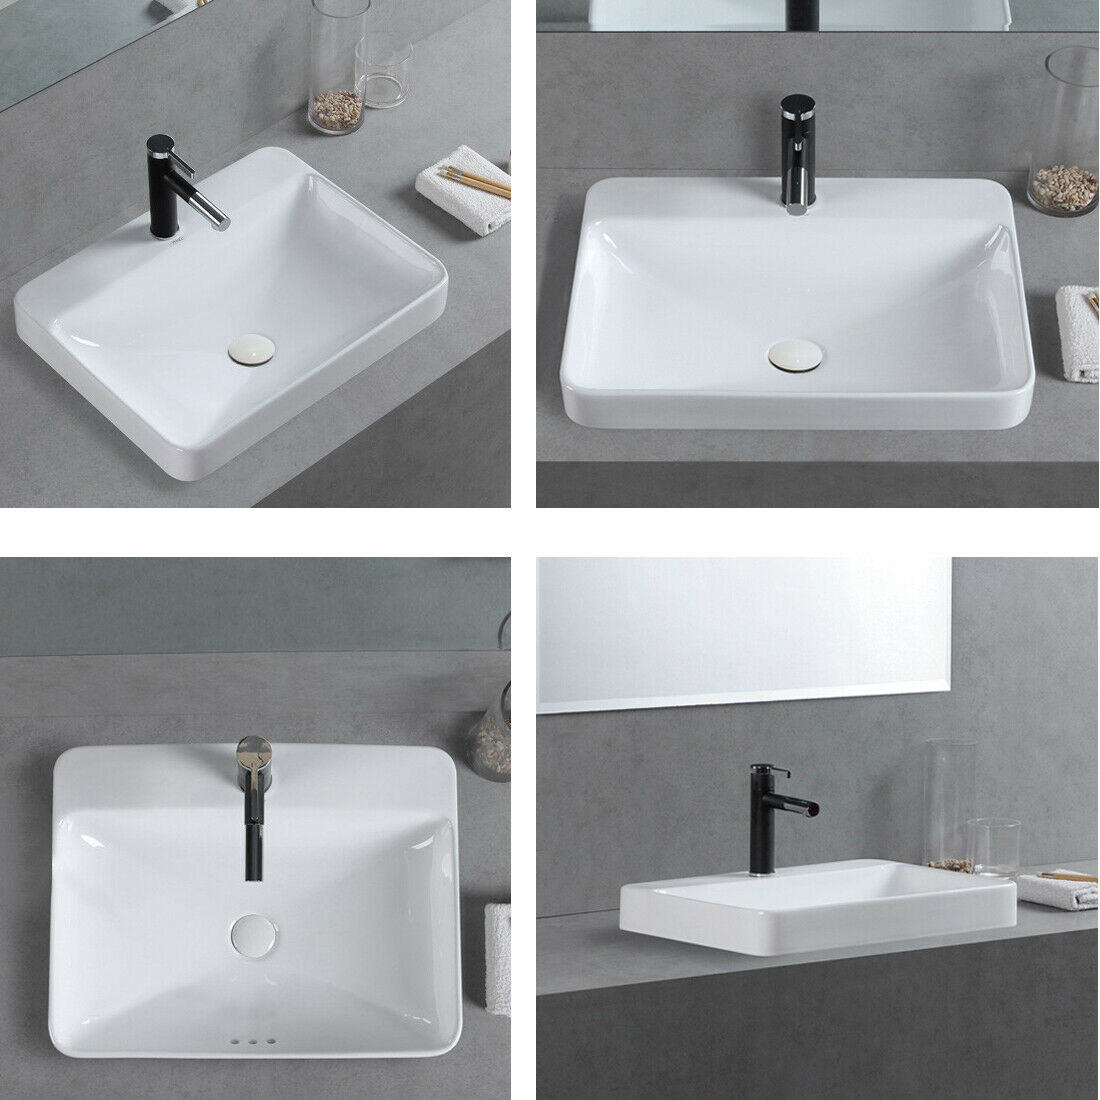 """4"""" Rectangular Drop in Bathroom Vanity Sink with Overflow and Faucet Hole  White"""